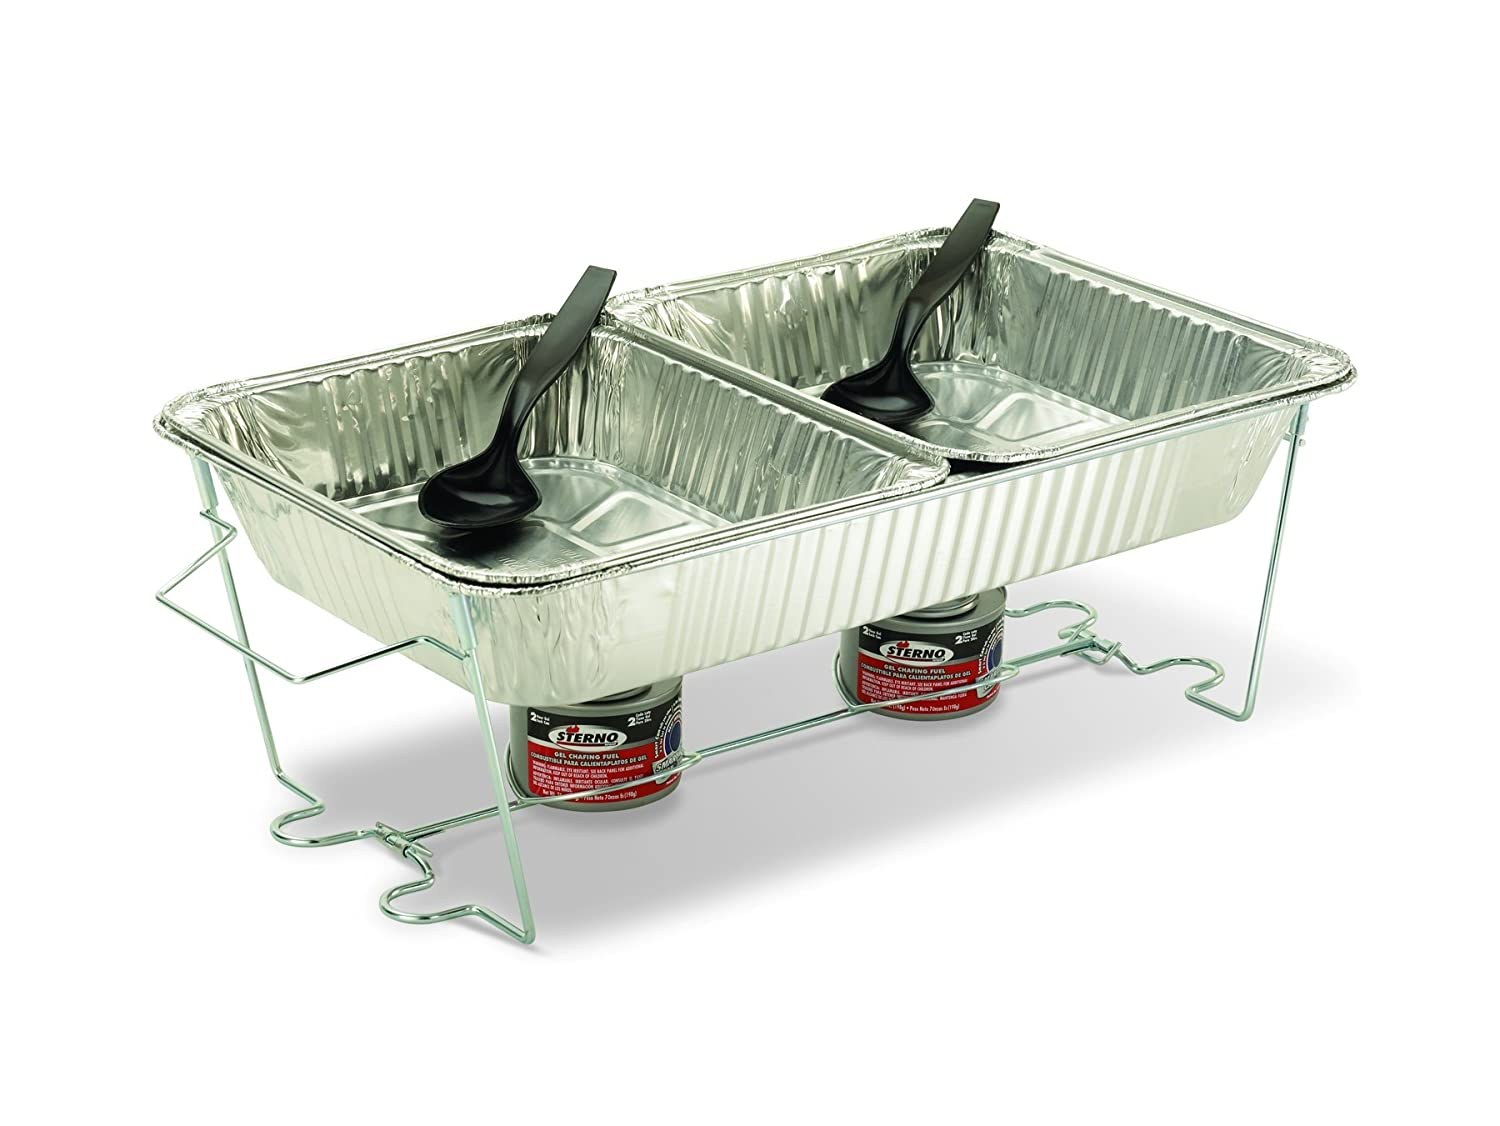 Sterno st07000 pop up chafer new free shipping ebay for Aluminum cuisine